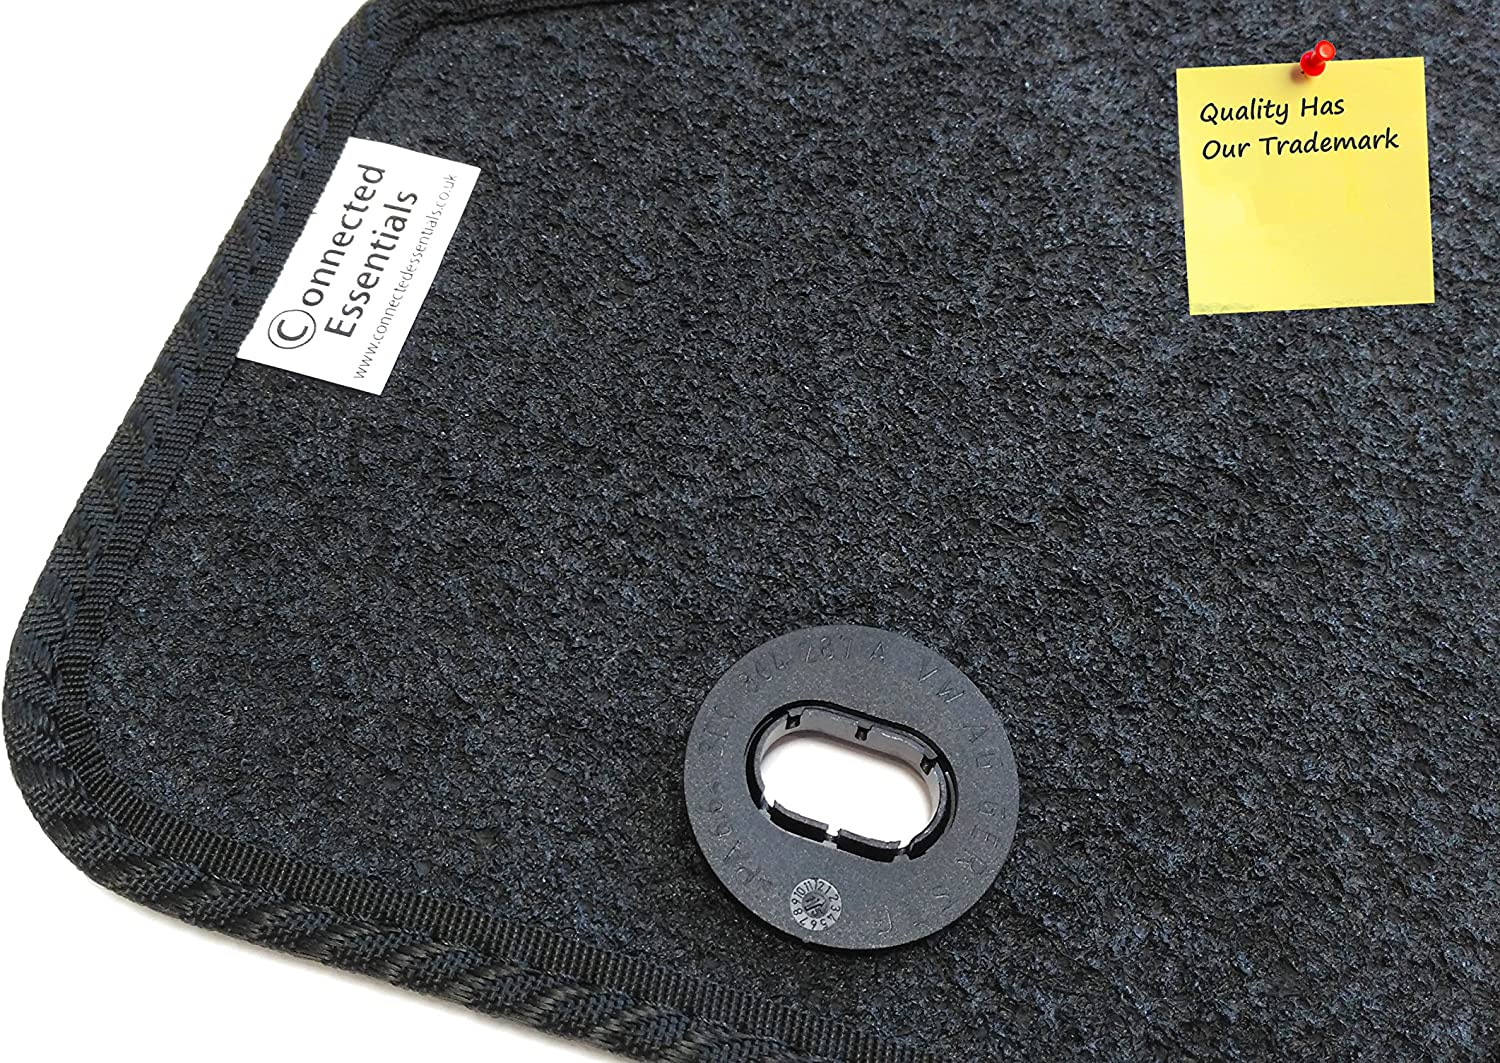 Connected Essentials CEM650 Grey with Red Trim Tailored Heavy Duty Custom Fit Car Mats Kia Soul 2008-2011